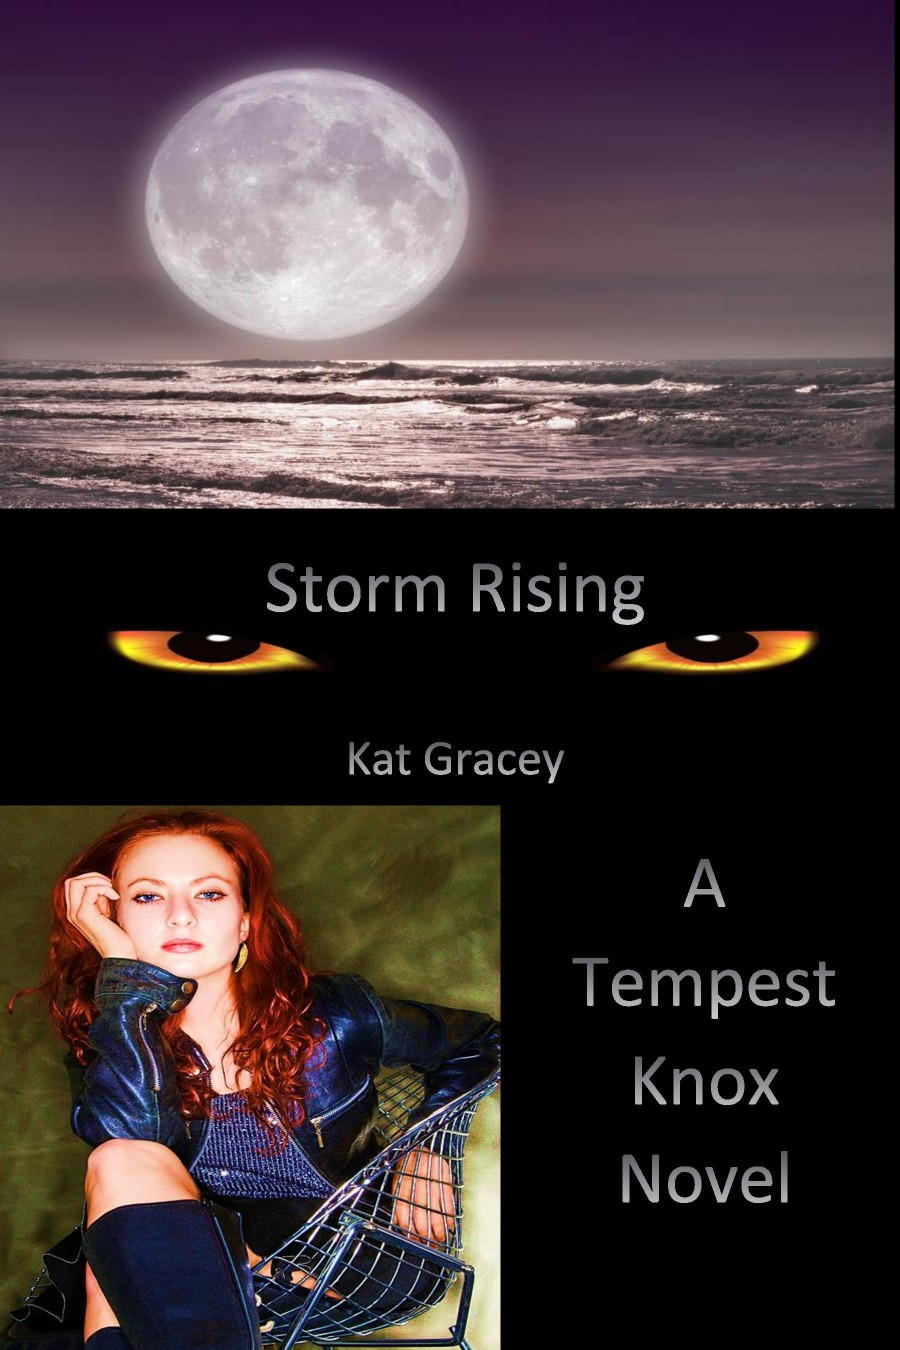 Tempest Knox coverf-page-001